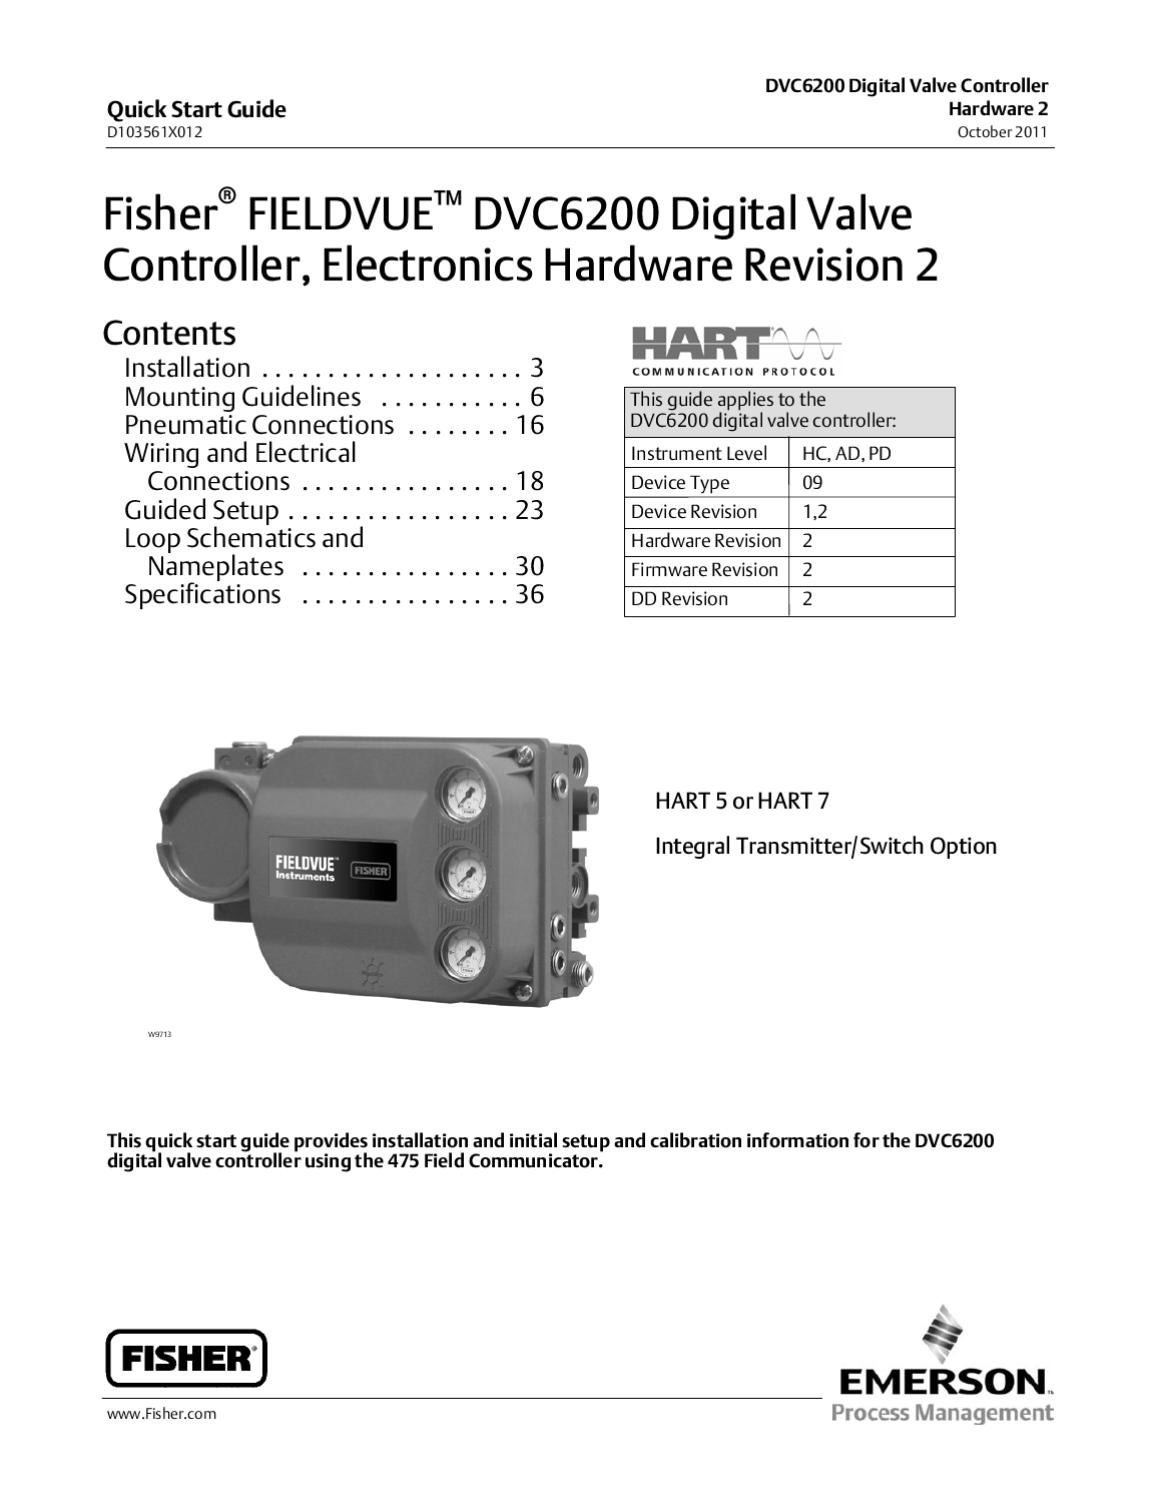 page_1 dvc6200 quick start guide elctrncs hrdwre rev 2 oct 2011 by rmc fisher dvc 2000 wiring diagram at reclaimingppi.co